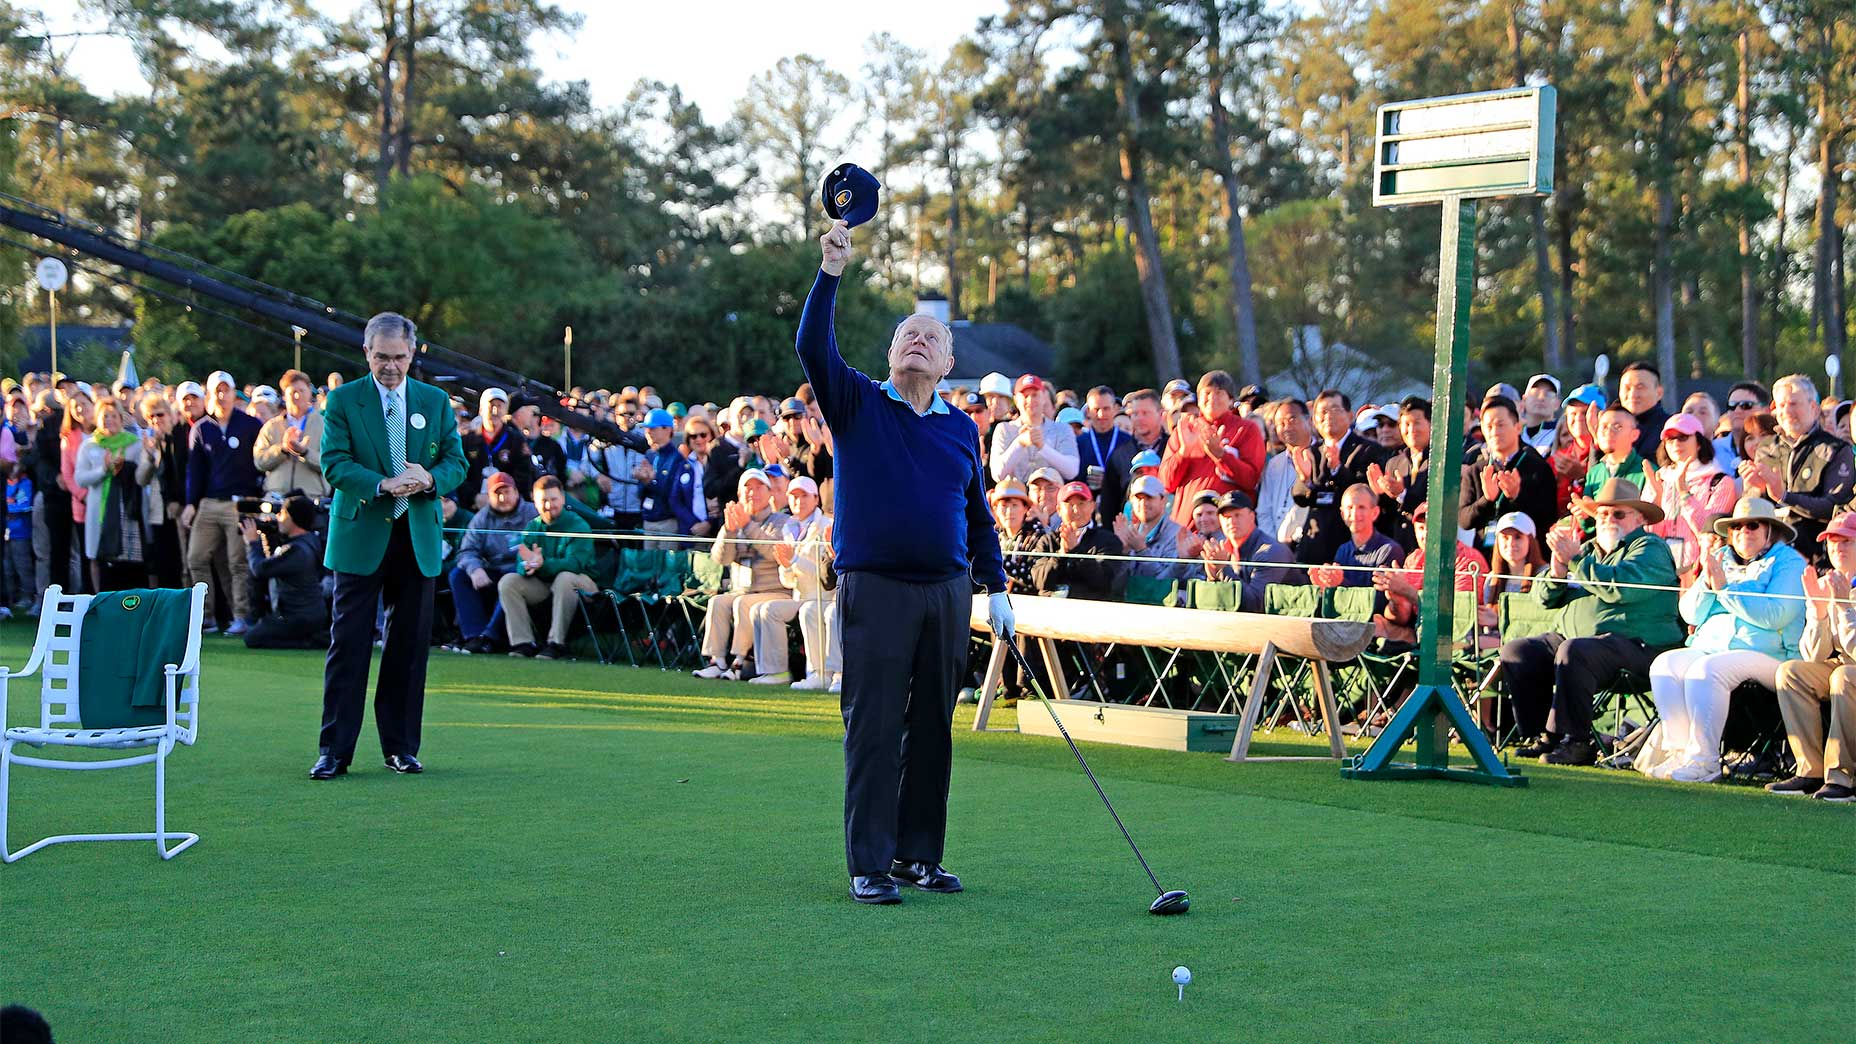 Jack Nicklaus at the 2017 Masters.